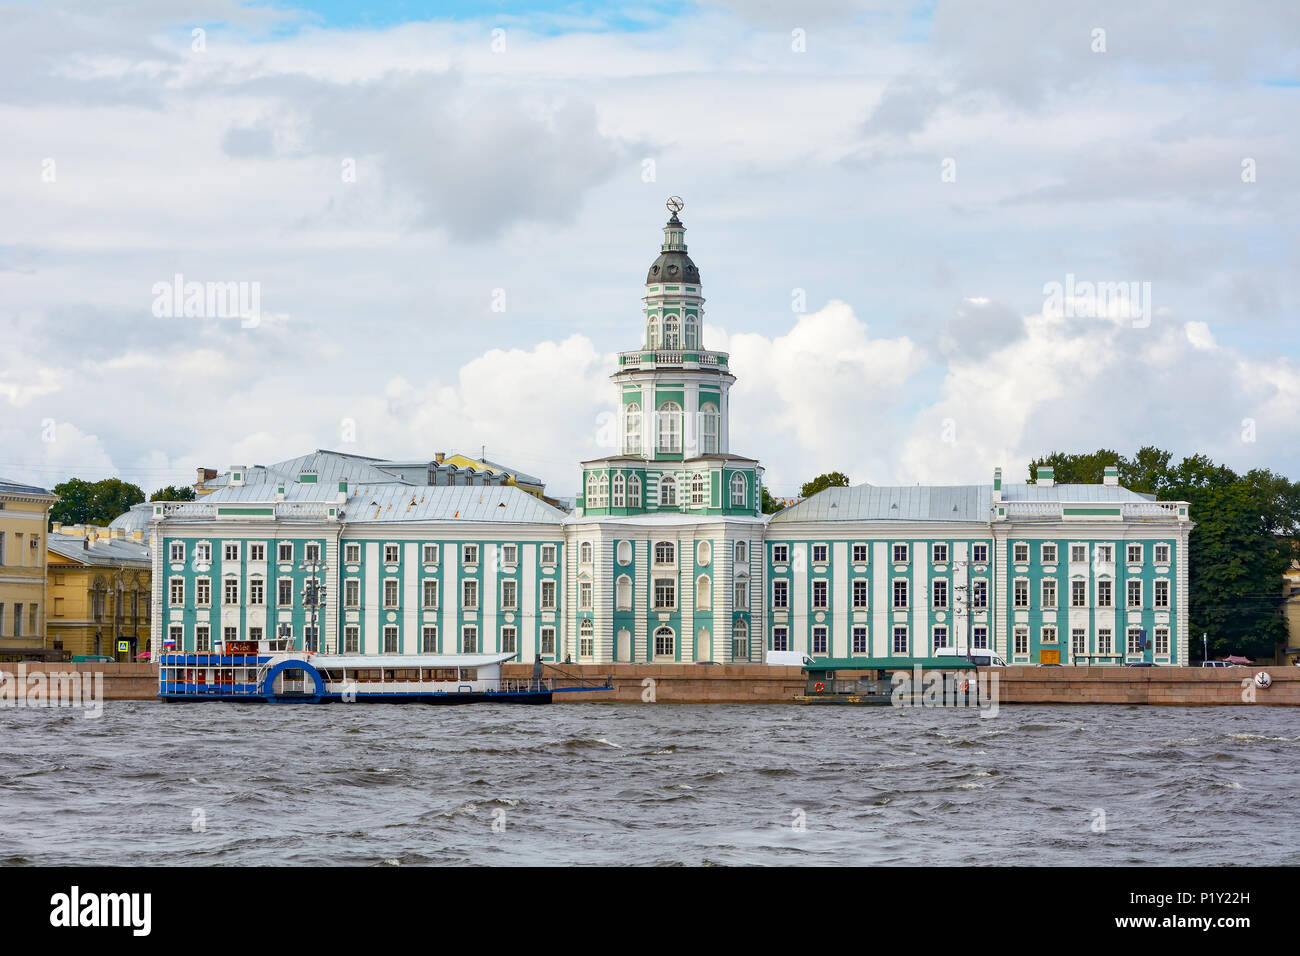 St. Petersburg, view of the old building of the Kunstkammer across the Neva river - Stock Image